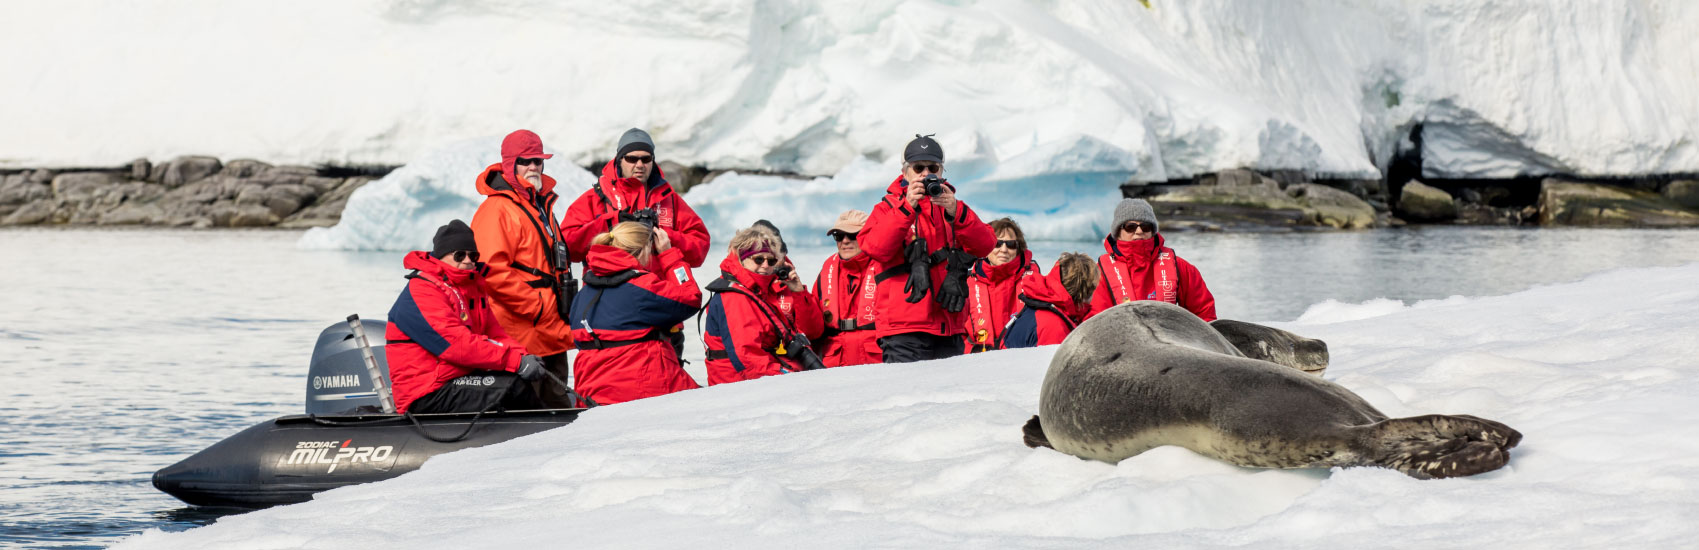 Discover Antarctica with Abercrombie & Kent 1